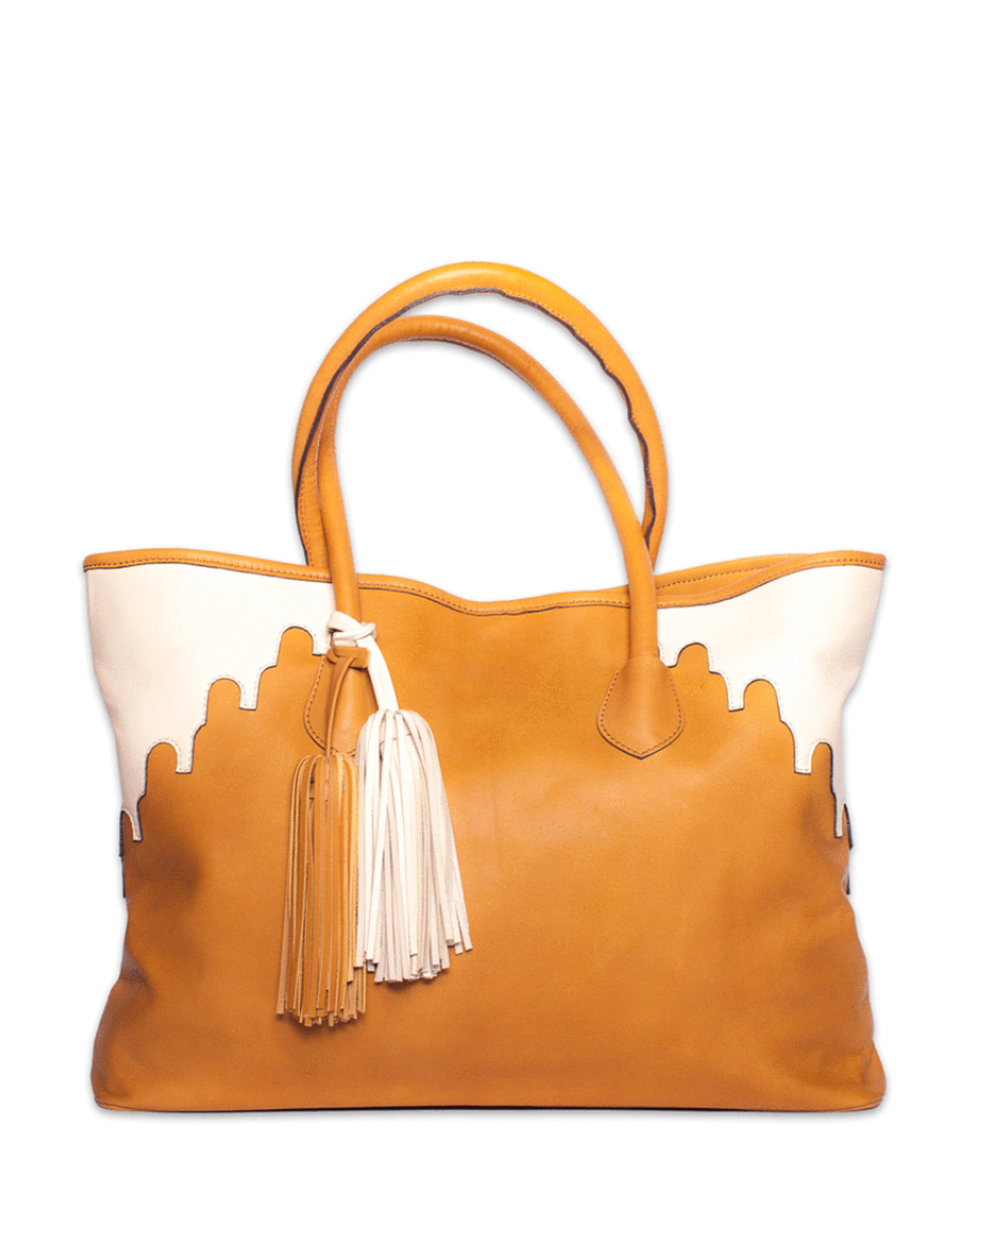 abury-rabbia-camel-leather-shopper-totebag.jpg